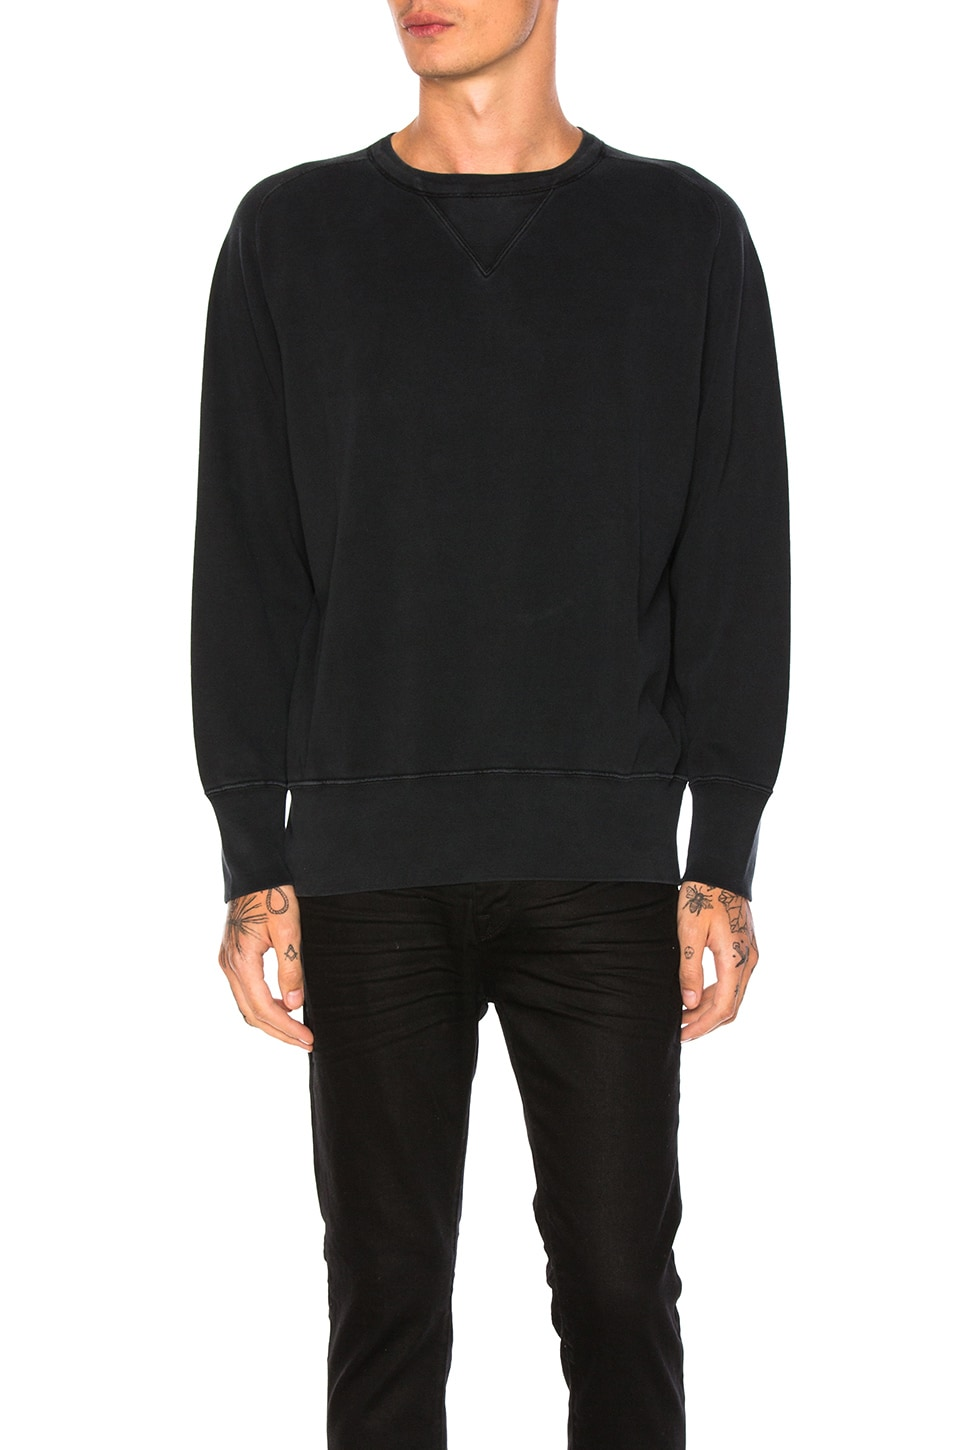 Photo of Bay Meadows Sweatshirt by LEVI'S Vintage Clothing men clothes